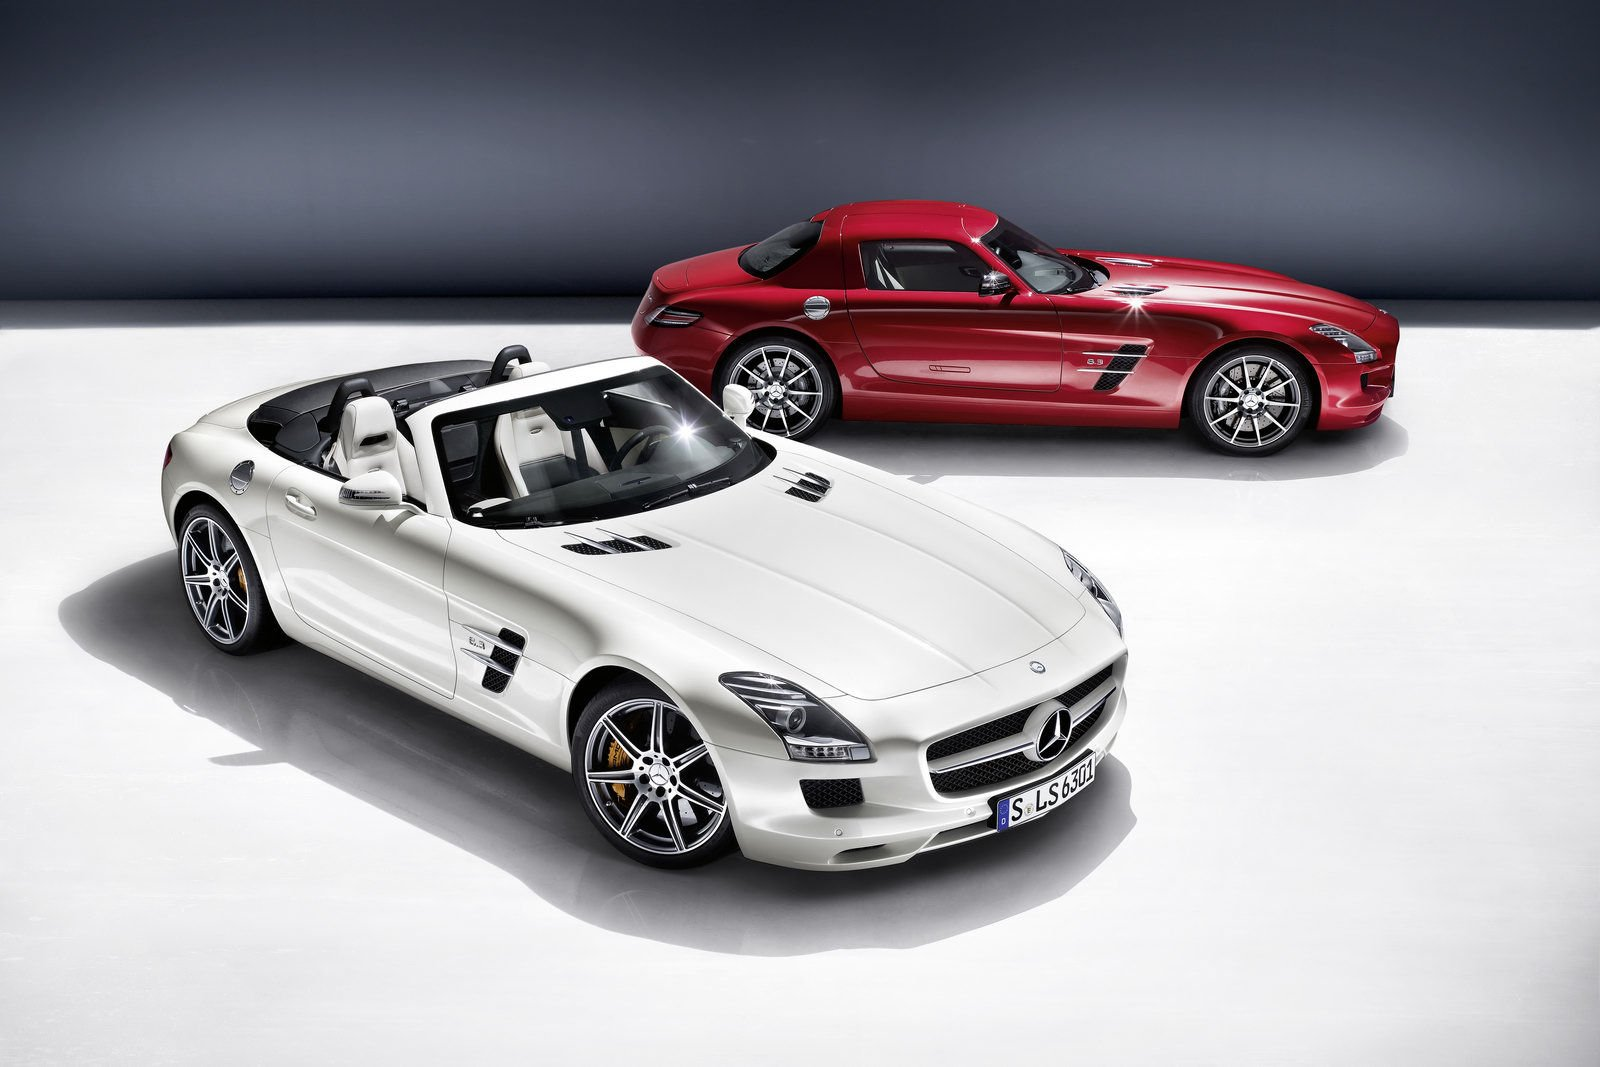 hotly anticipated SLS AMG